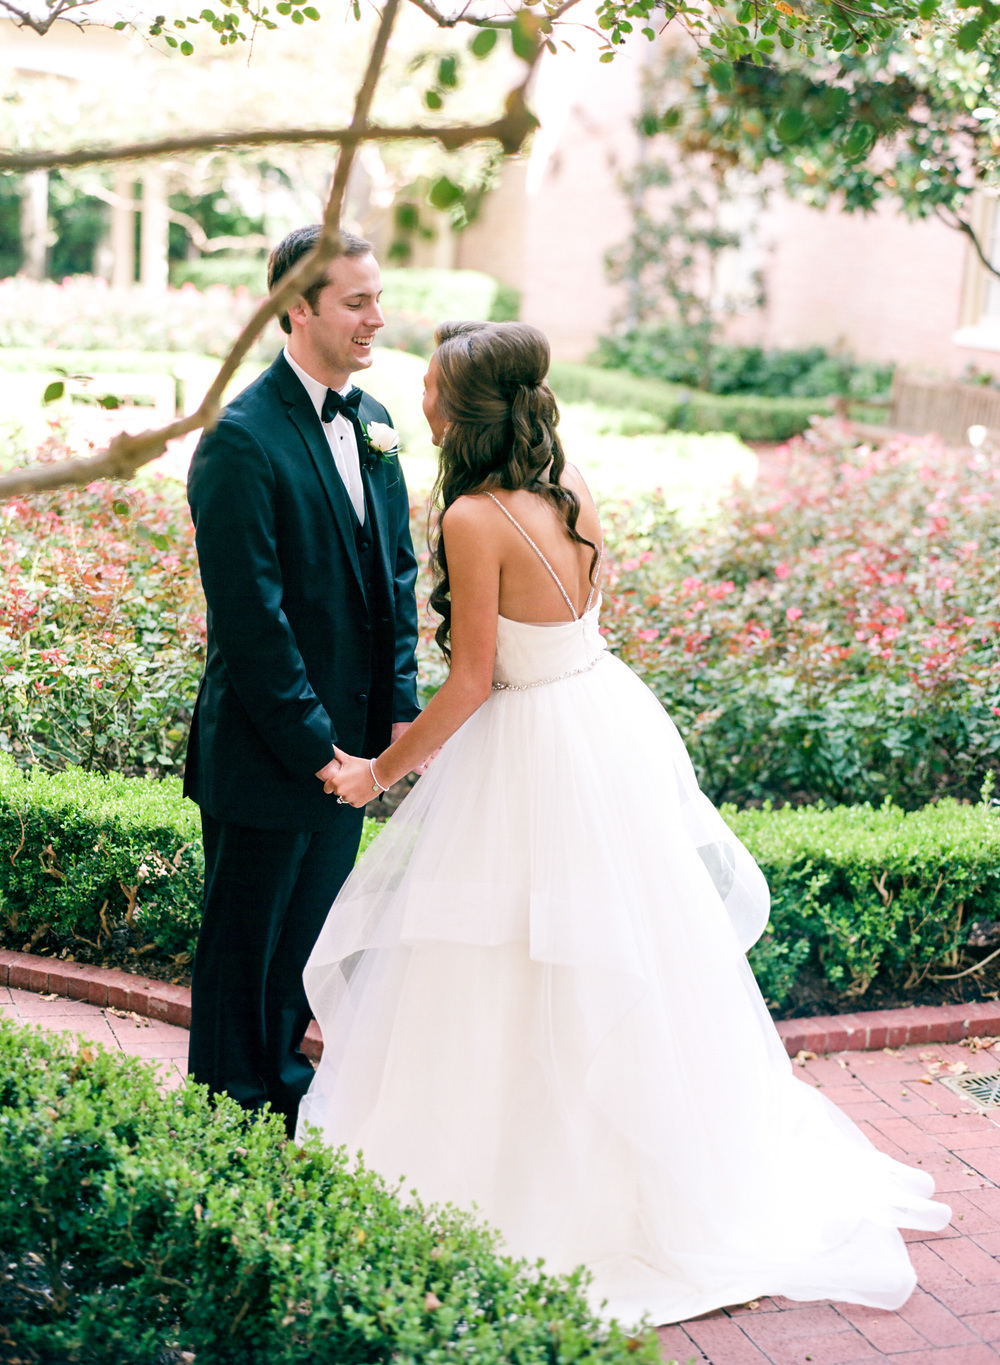 Dana-Fernandez-Photography-Weddings-in-Houston-Magazine-feature-Houston-wedding-photographer-film-23.jpg